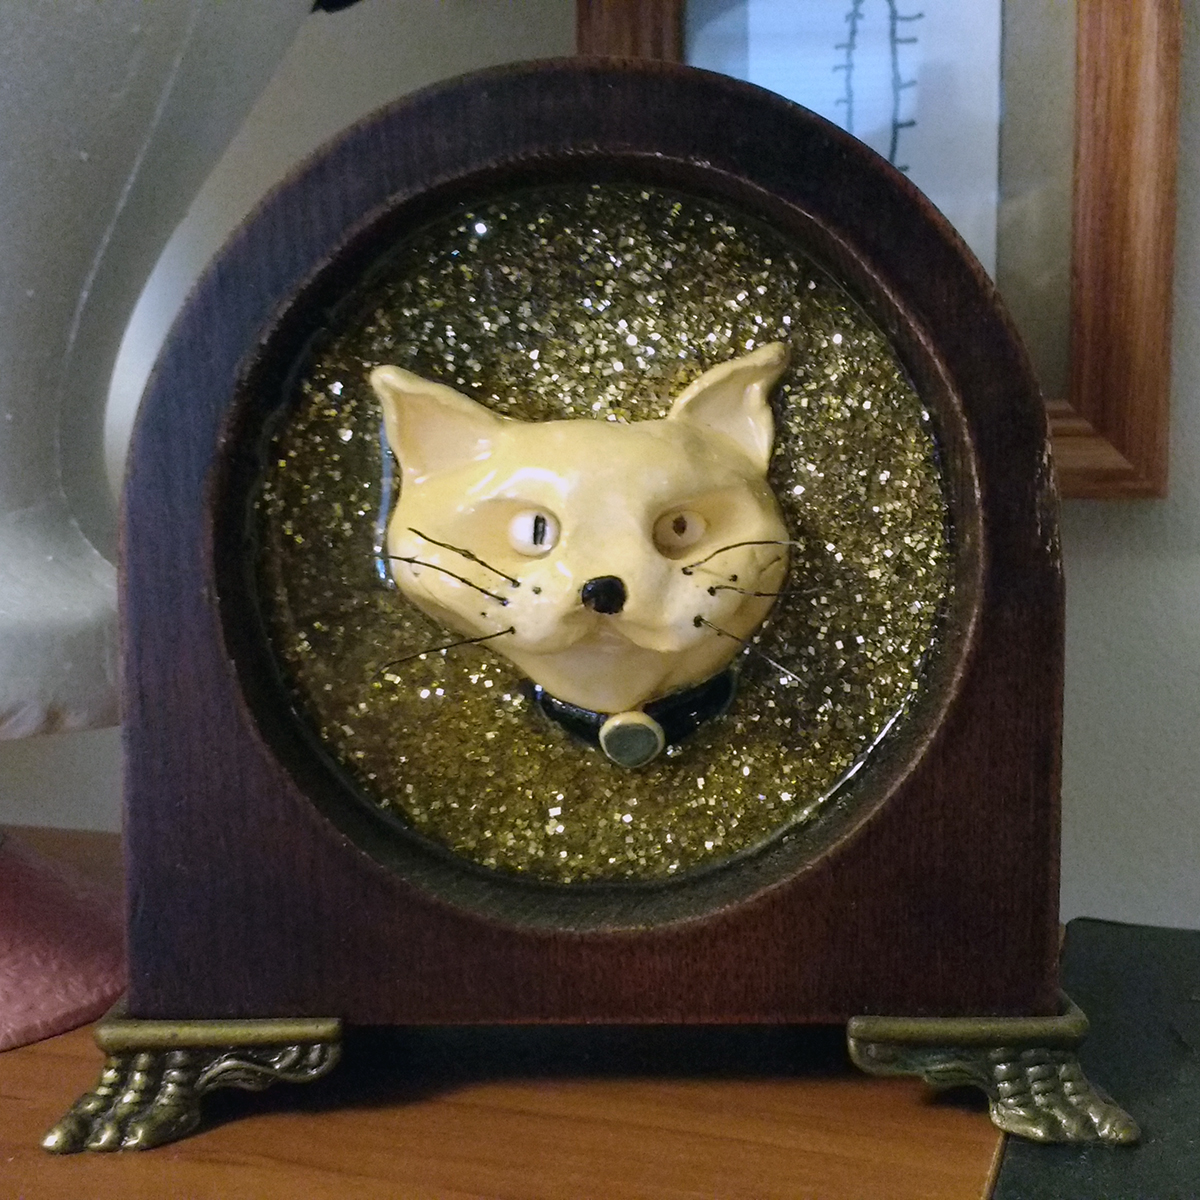 ptermclean art time cat kitty clock | ptermclean.com